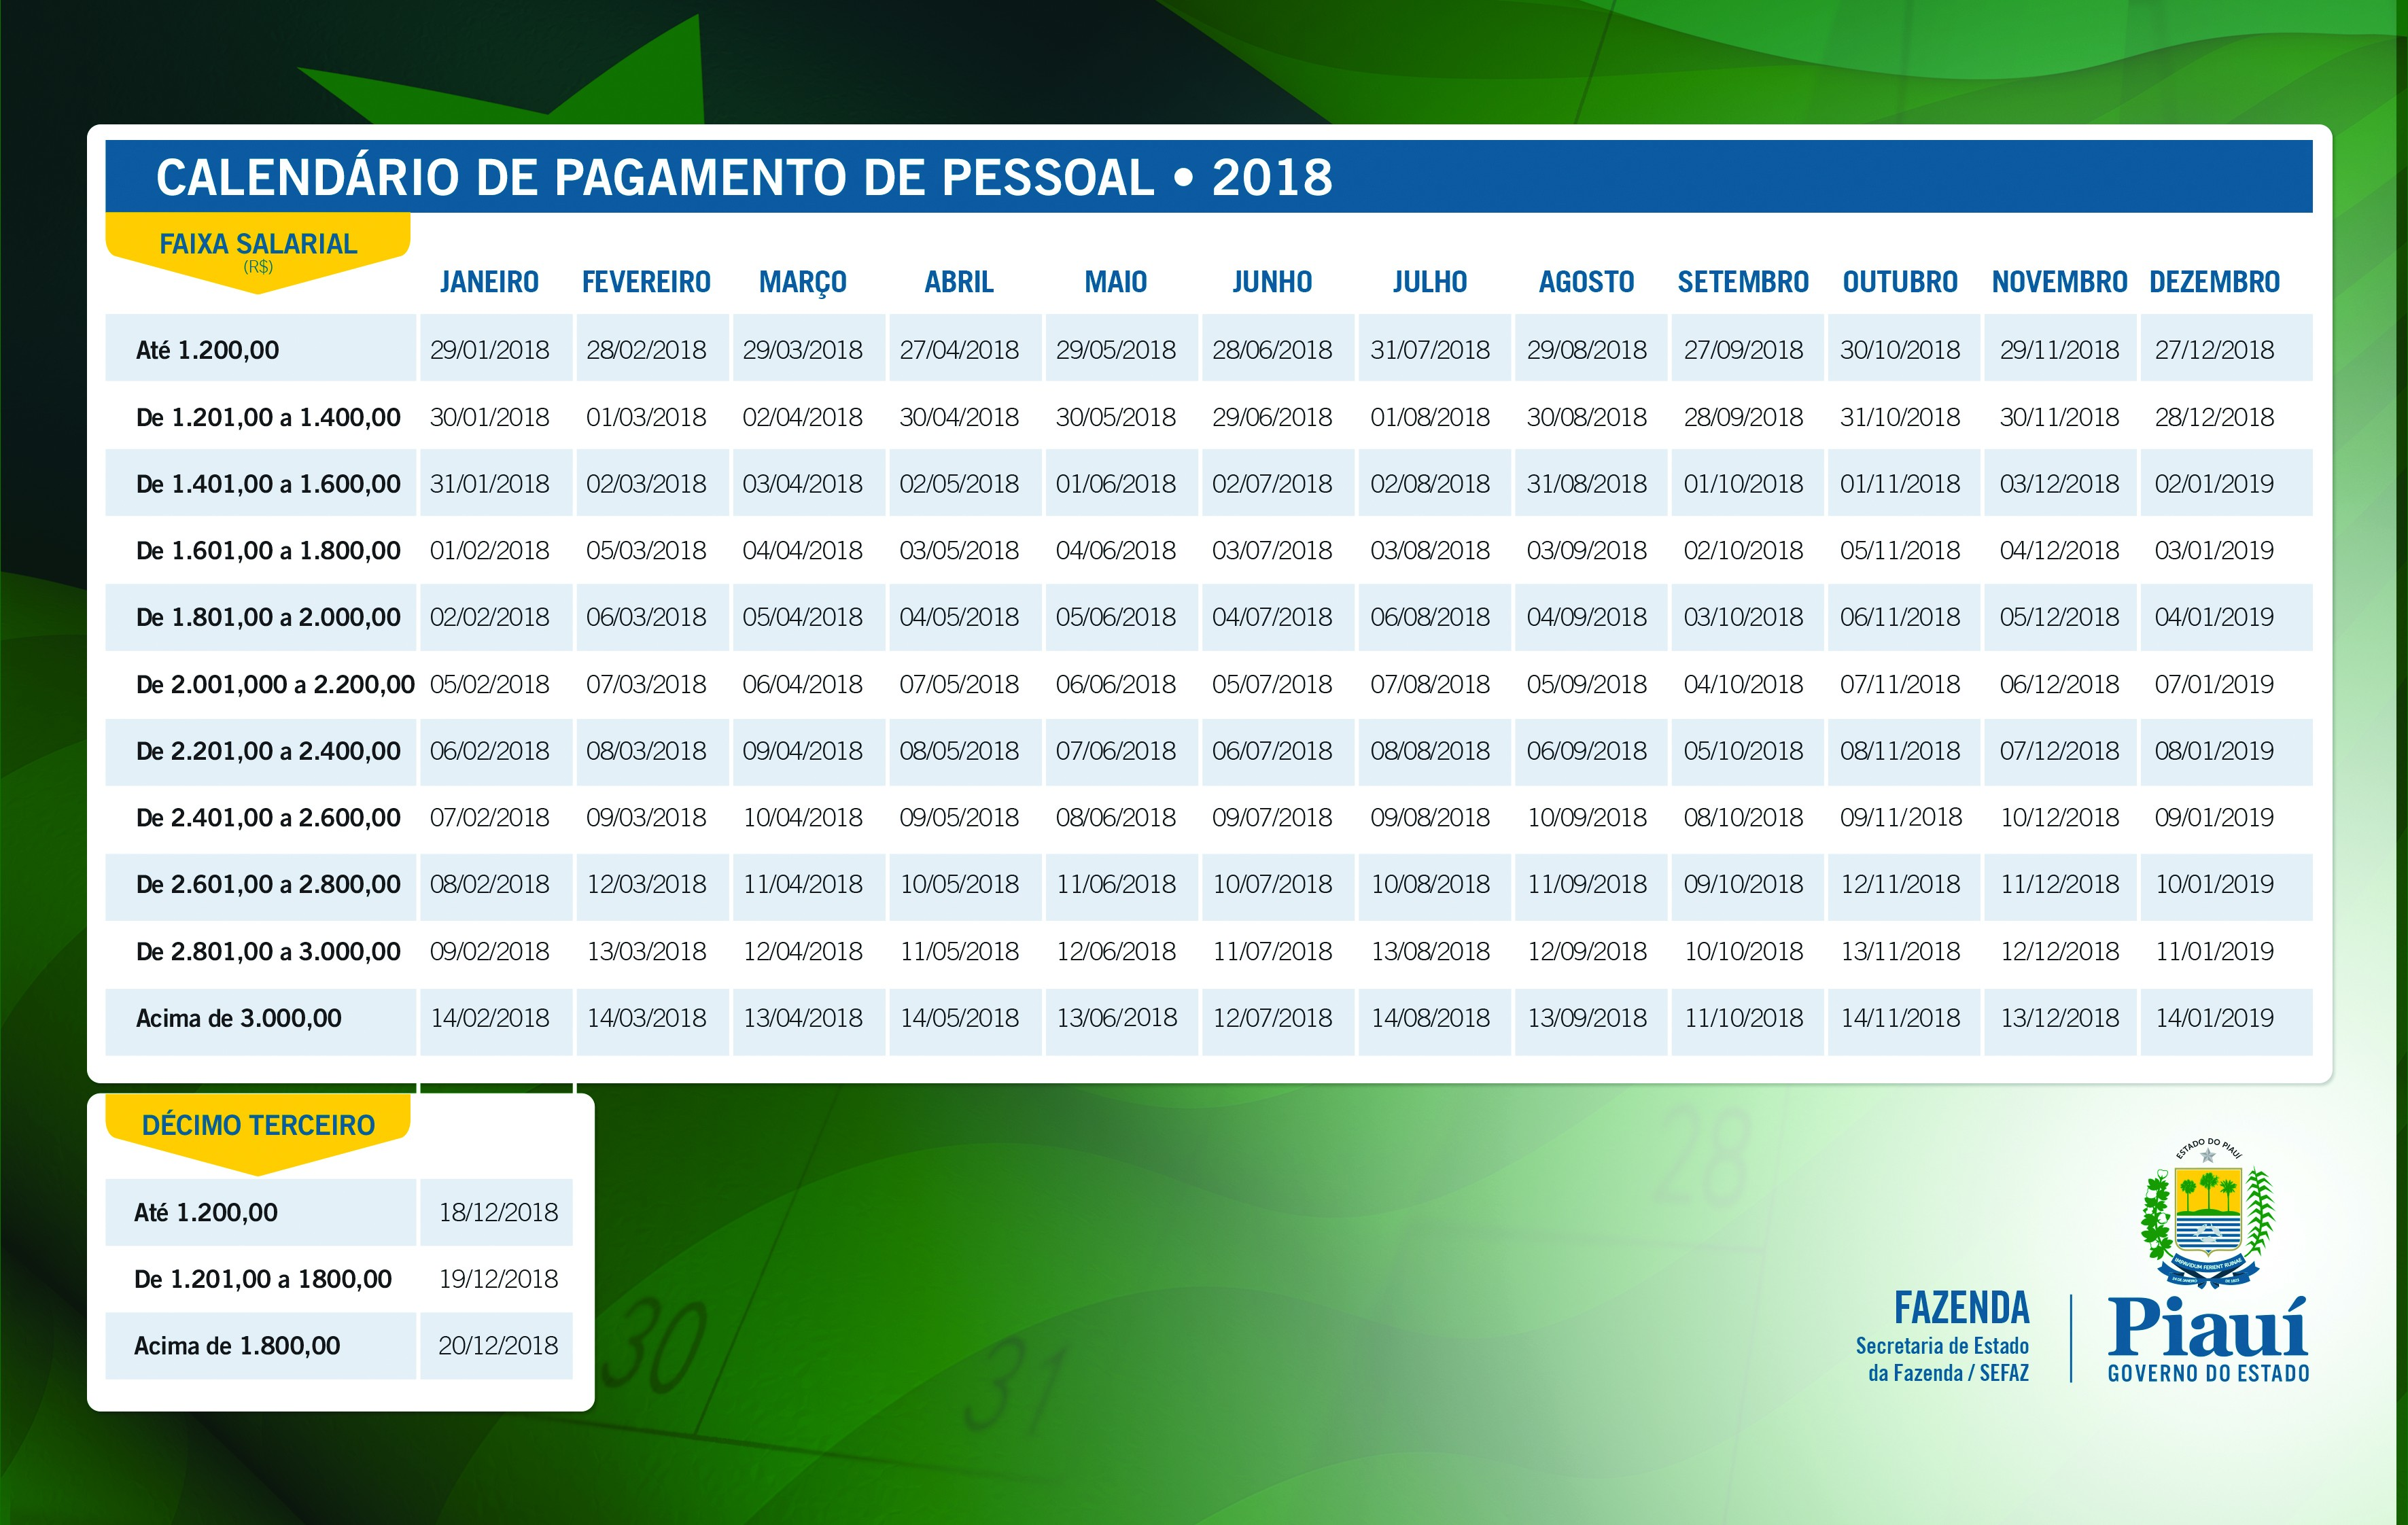 Calendario 2019 Feriados Oficiais Actual Portal Do Governo Do Estado Do Piau­ Of Calendario 2019 Feriados Oficiais Actual Eur Lex R2447 En Eur Lex